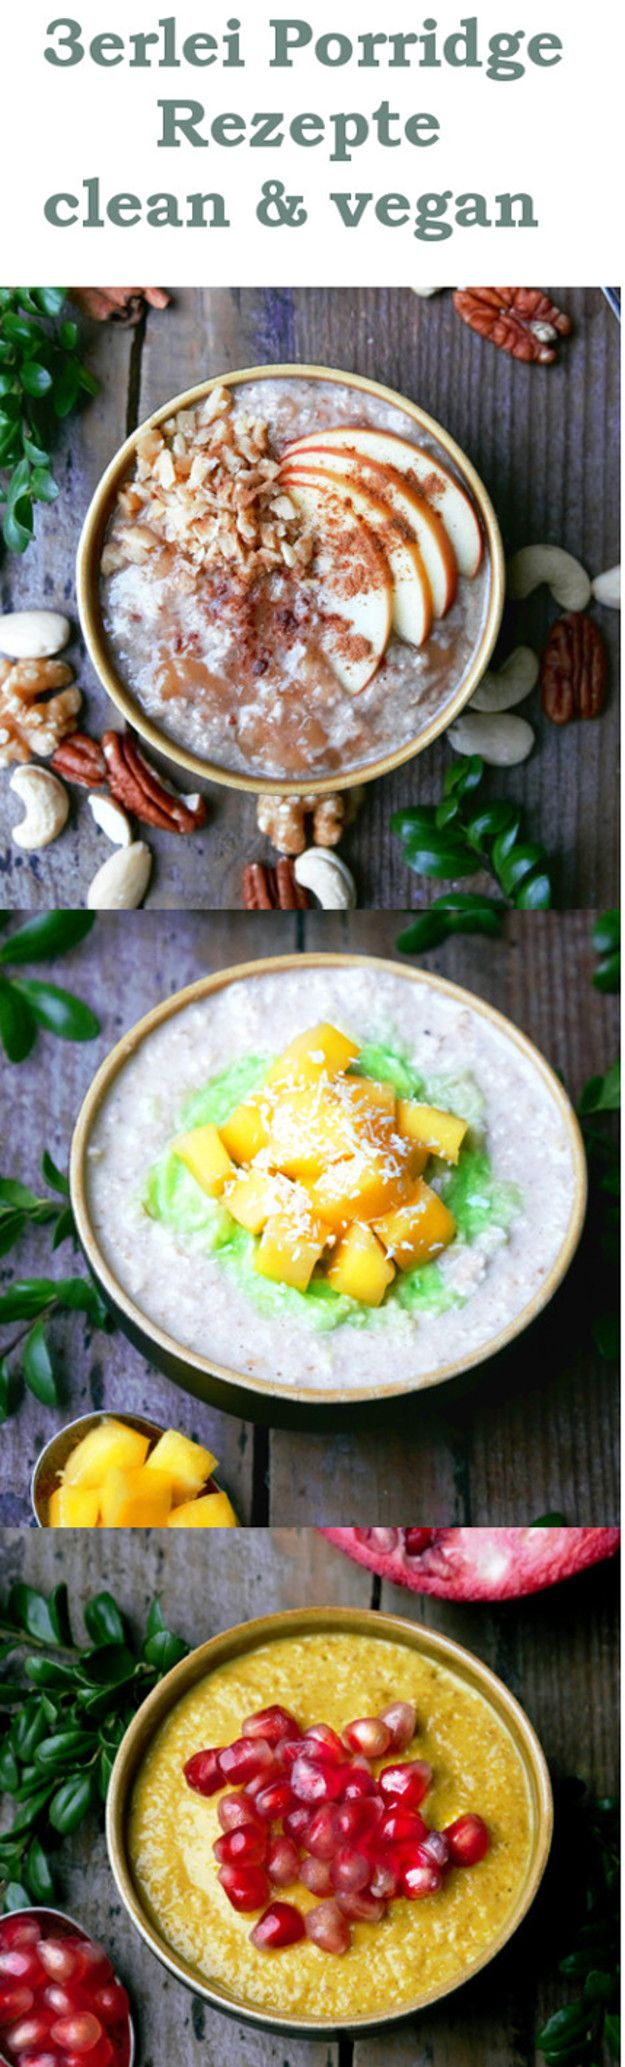 vegan Porridge Recipes for a clean and easy start in your